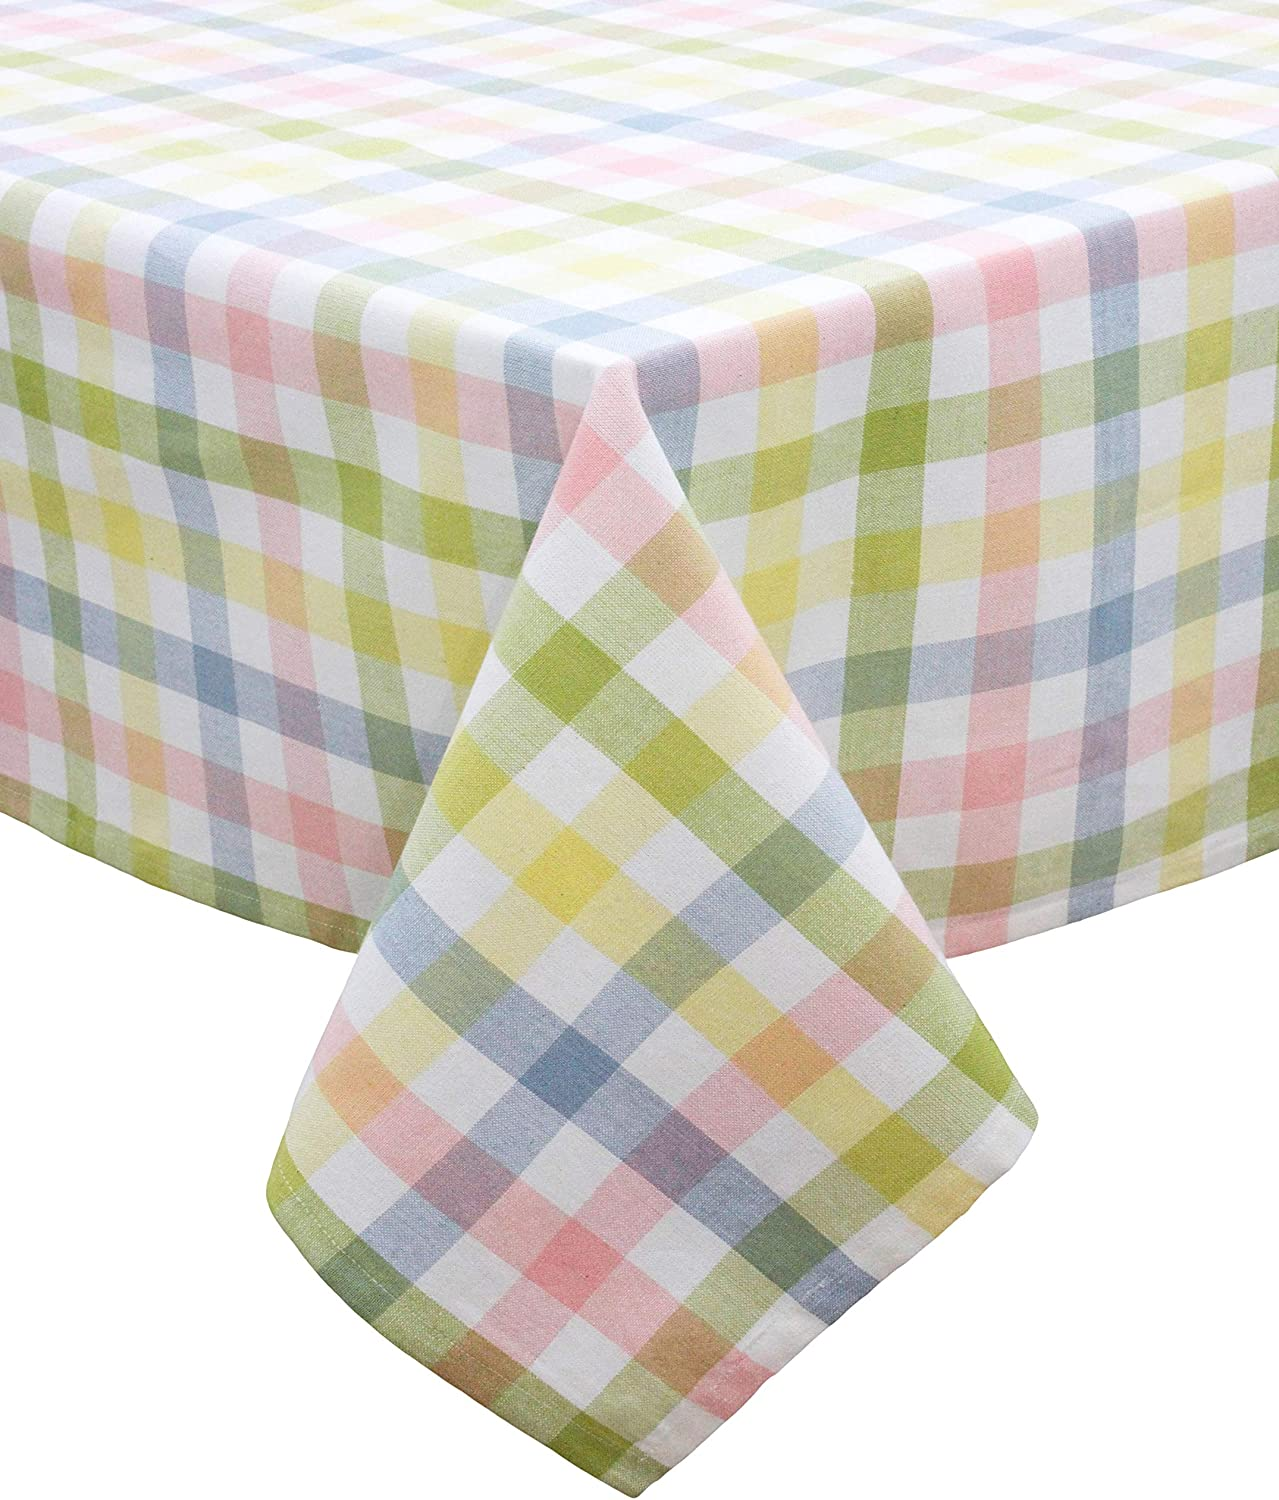 COTTON CRAFT Max 62% OFF Spring Gingham Pastel Checked Tab Plaid Cotton Challenge the lowest price of Japan ☆ Pure